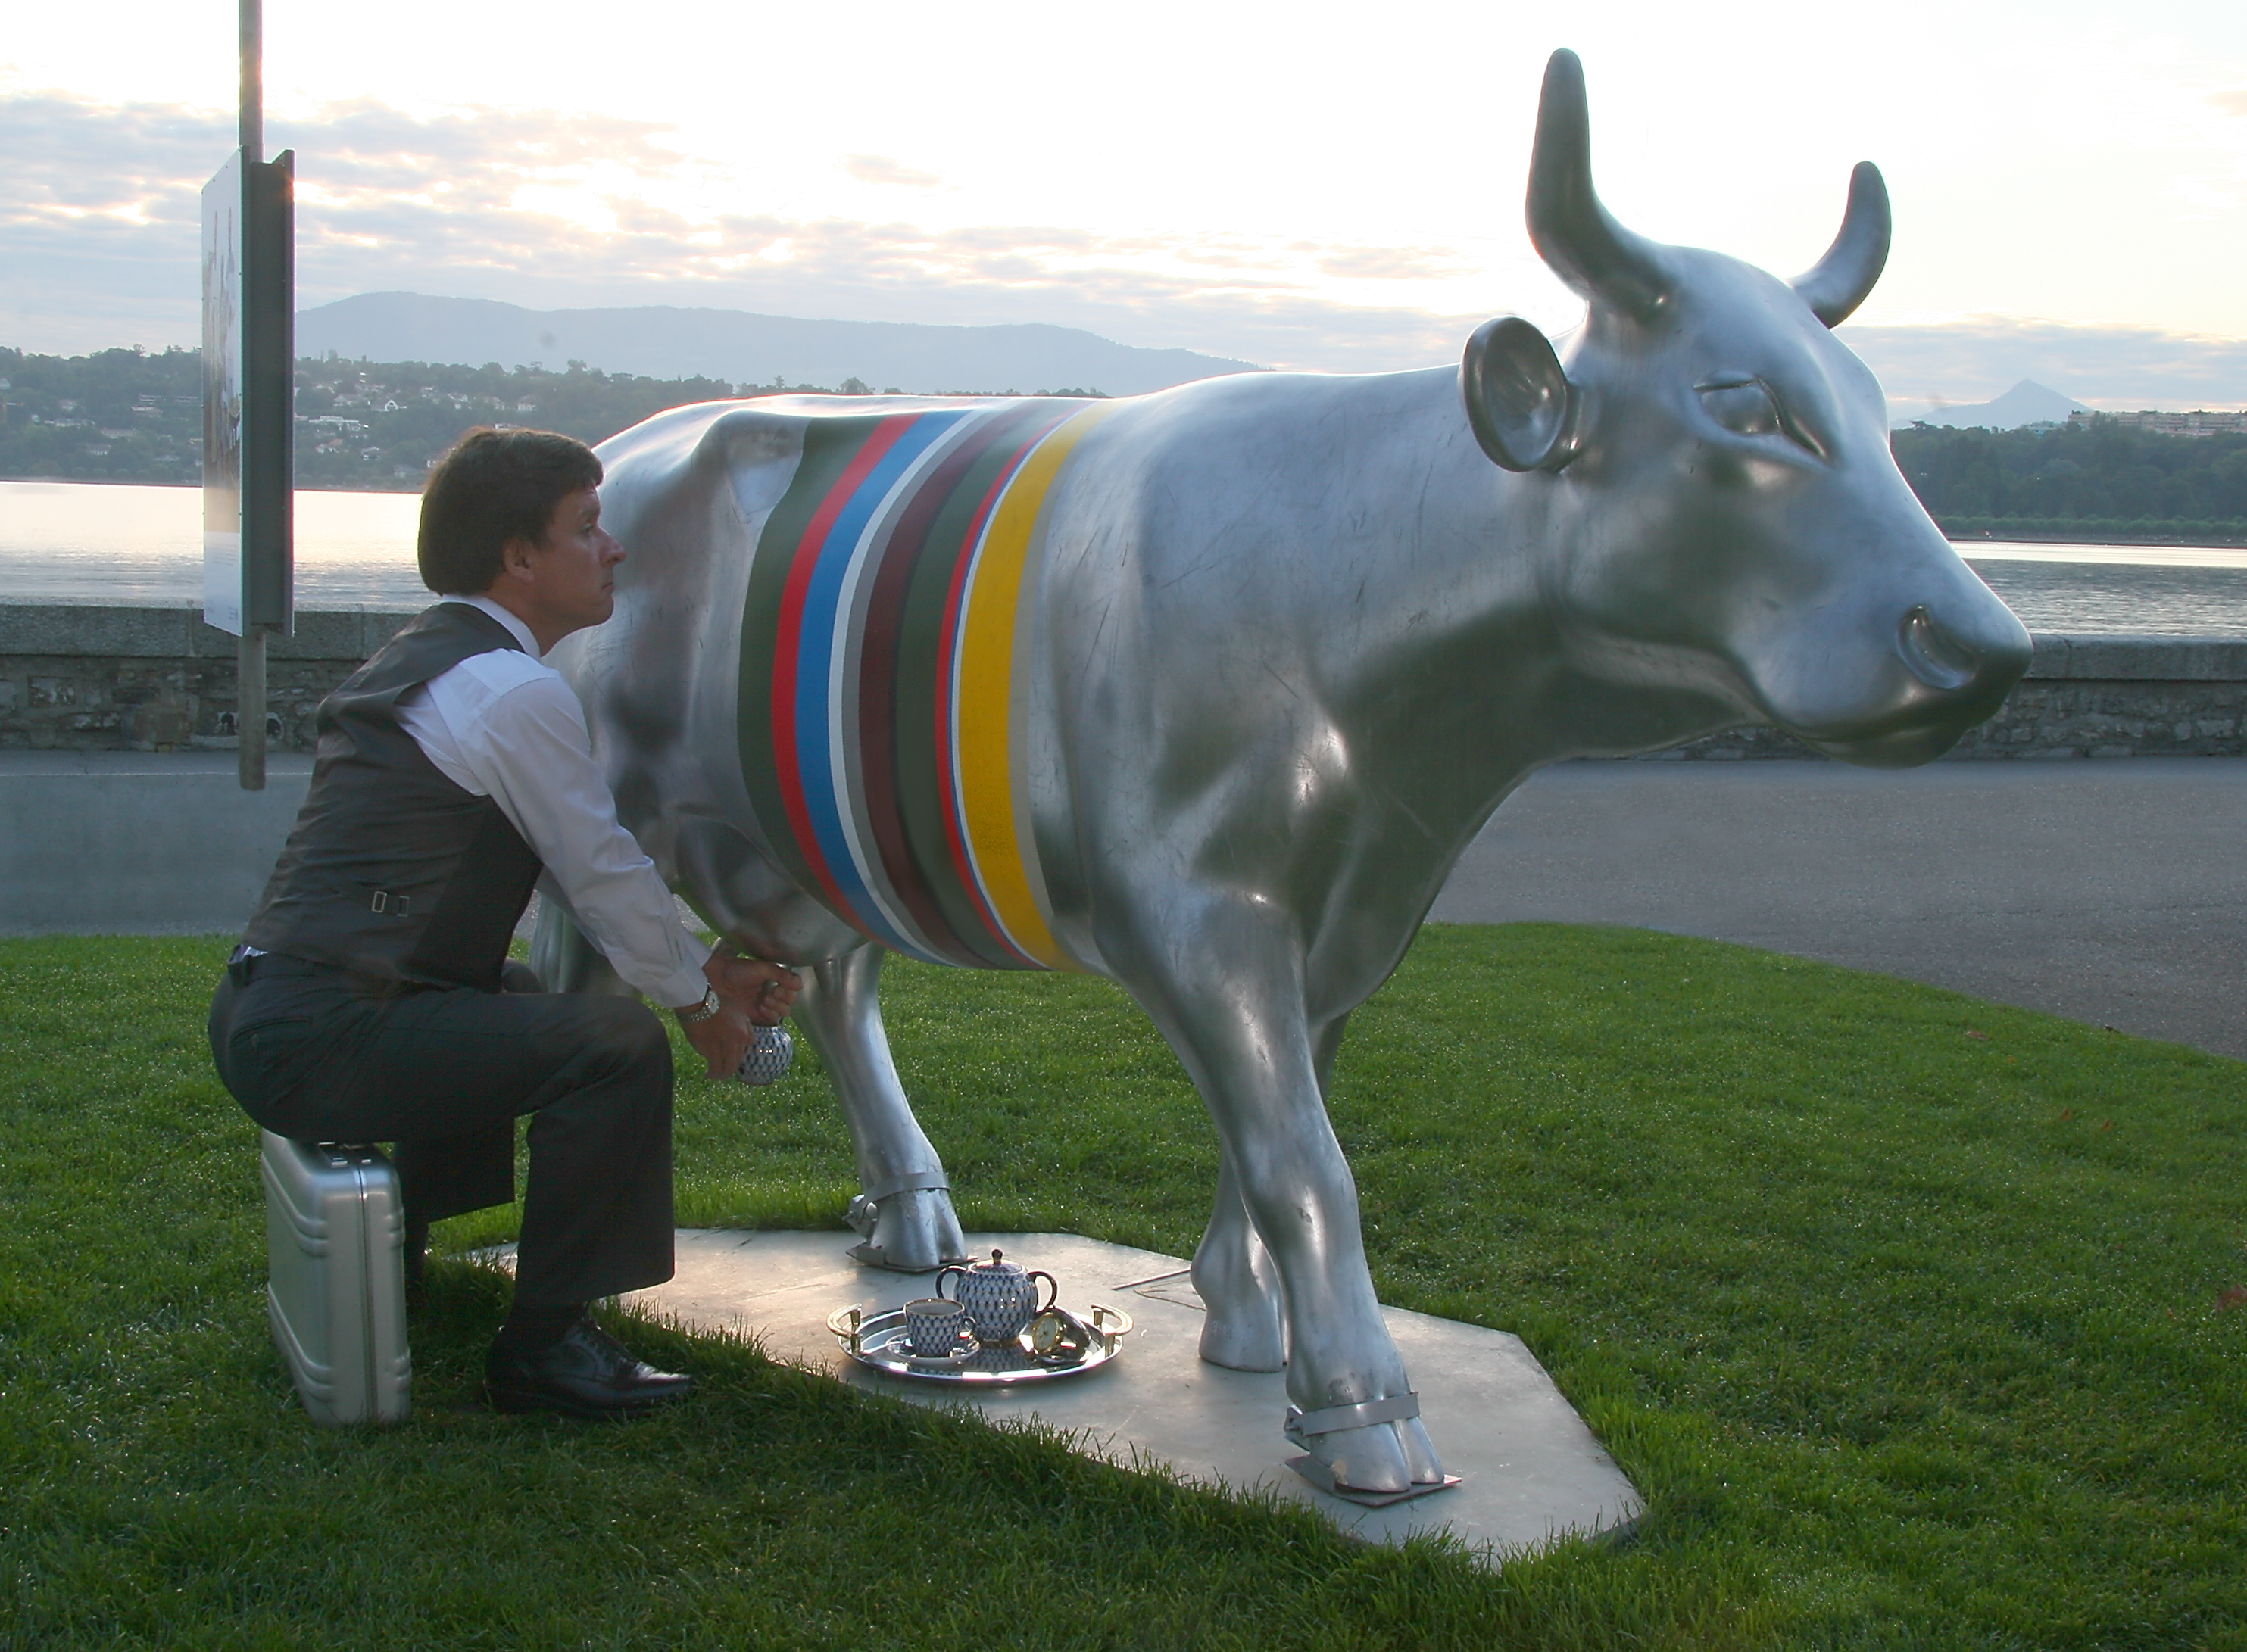 Cow photo competition winner, Geneva Switzerland.jpg - Cow photo competition winner